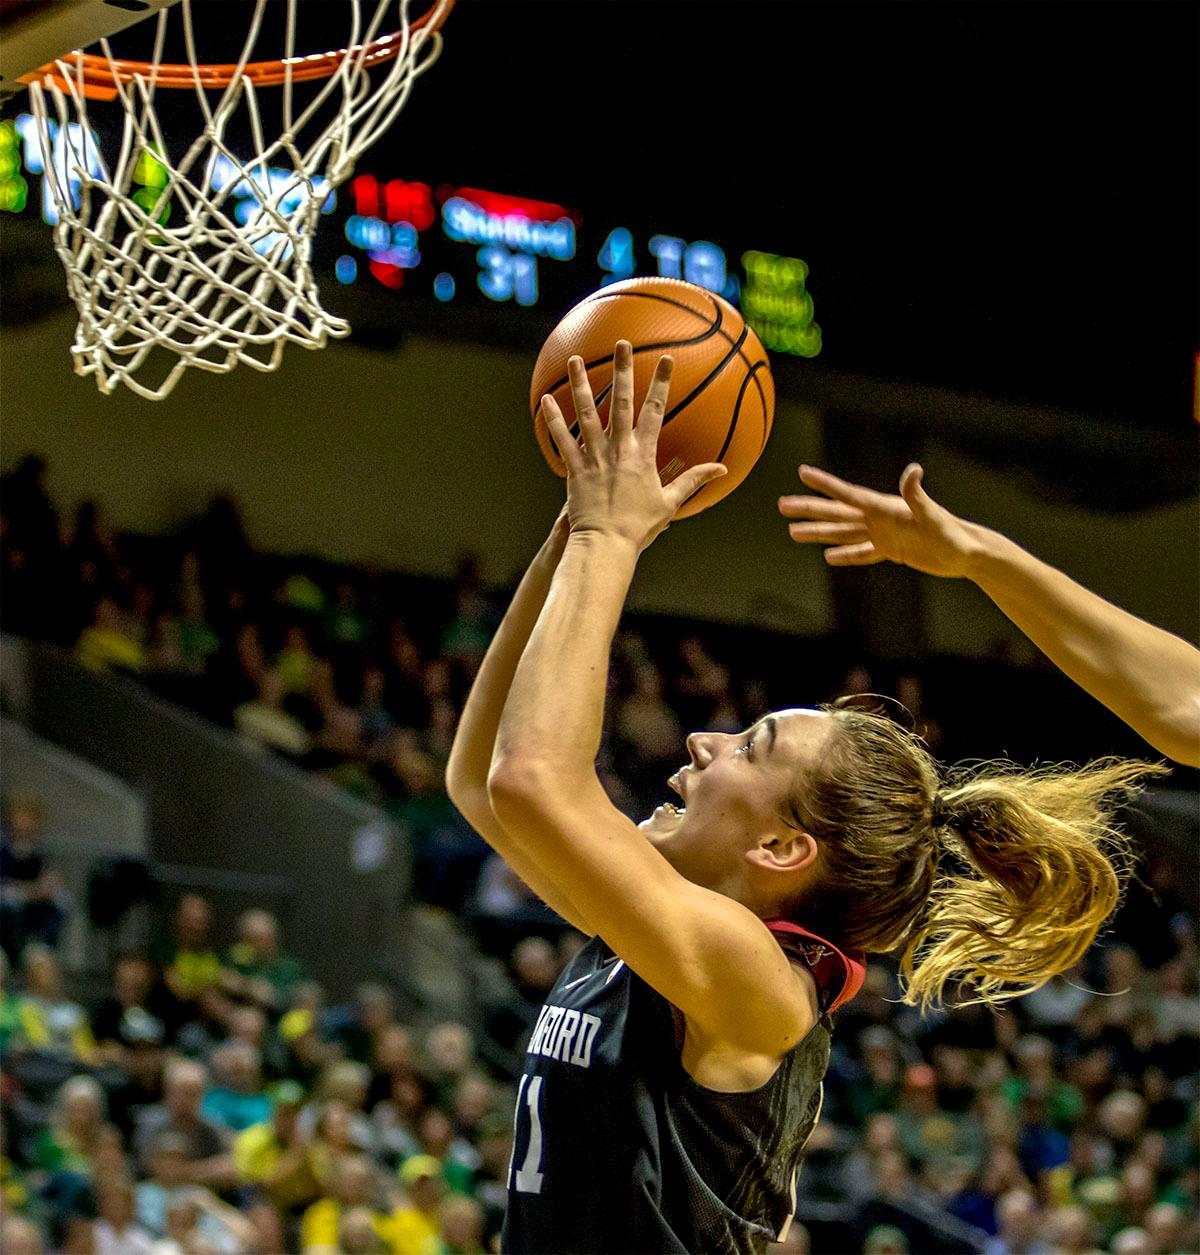 The Cardinal's Alanna Smith (#11) goes up for the basket. The Stanford Cardinal defeated the Oregon Ducks 78-65 on Sunday afternoon at Matthew Knight Arena. Stanford is now 10-2 in conference play and with this loss the Ducks drop to 10-2. Leading the Stanford Cardinal was Brittany McPhee with 33 points, Alanna Smith with 14 points, and Kiana Williams with 14 points. For the Ducks Sabrina Ionescu led with 22 points, Ruthy Hebard added 16 points, and Satou Sabally put in 14 points. Photo by August Frank, Oregon News Lab